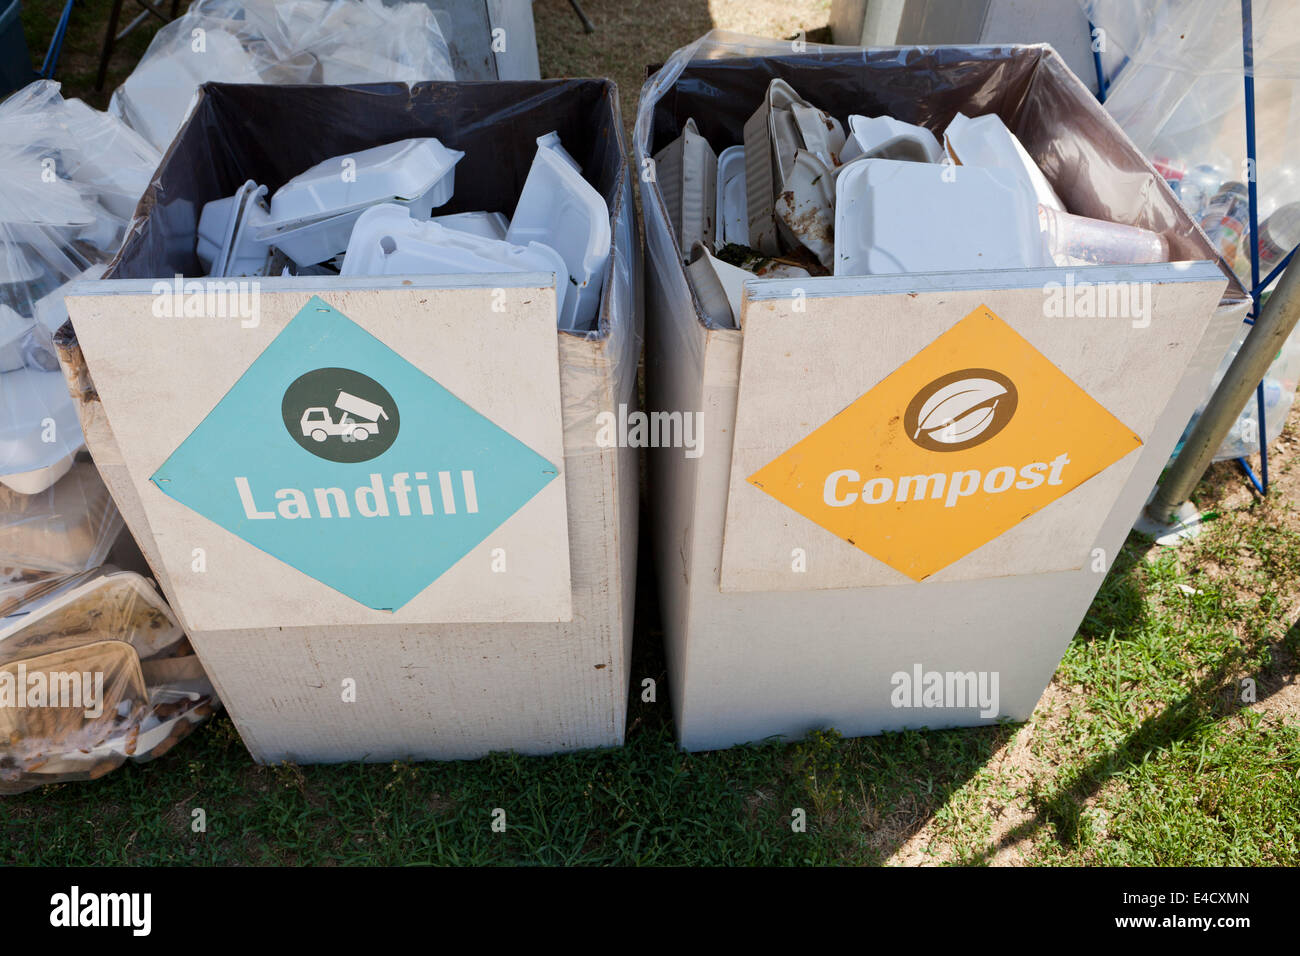 Landfill and compost refuse boxes at an outdoor event - USA - Stock Image